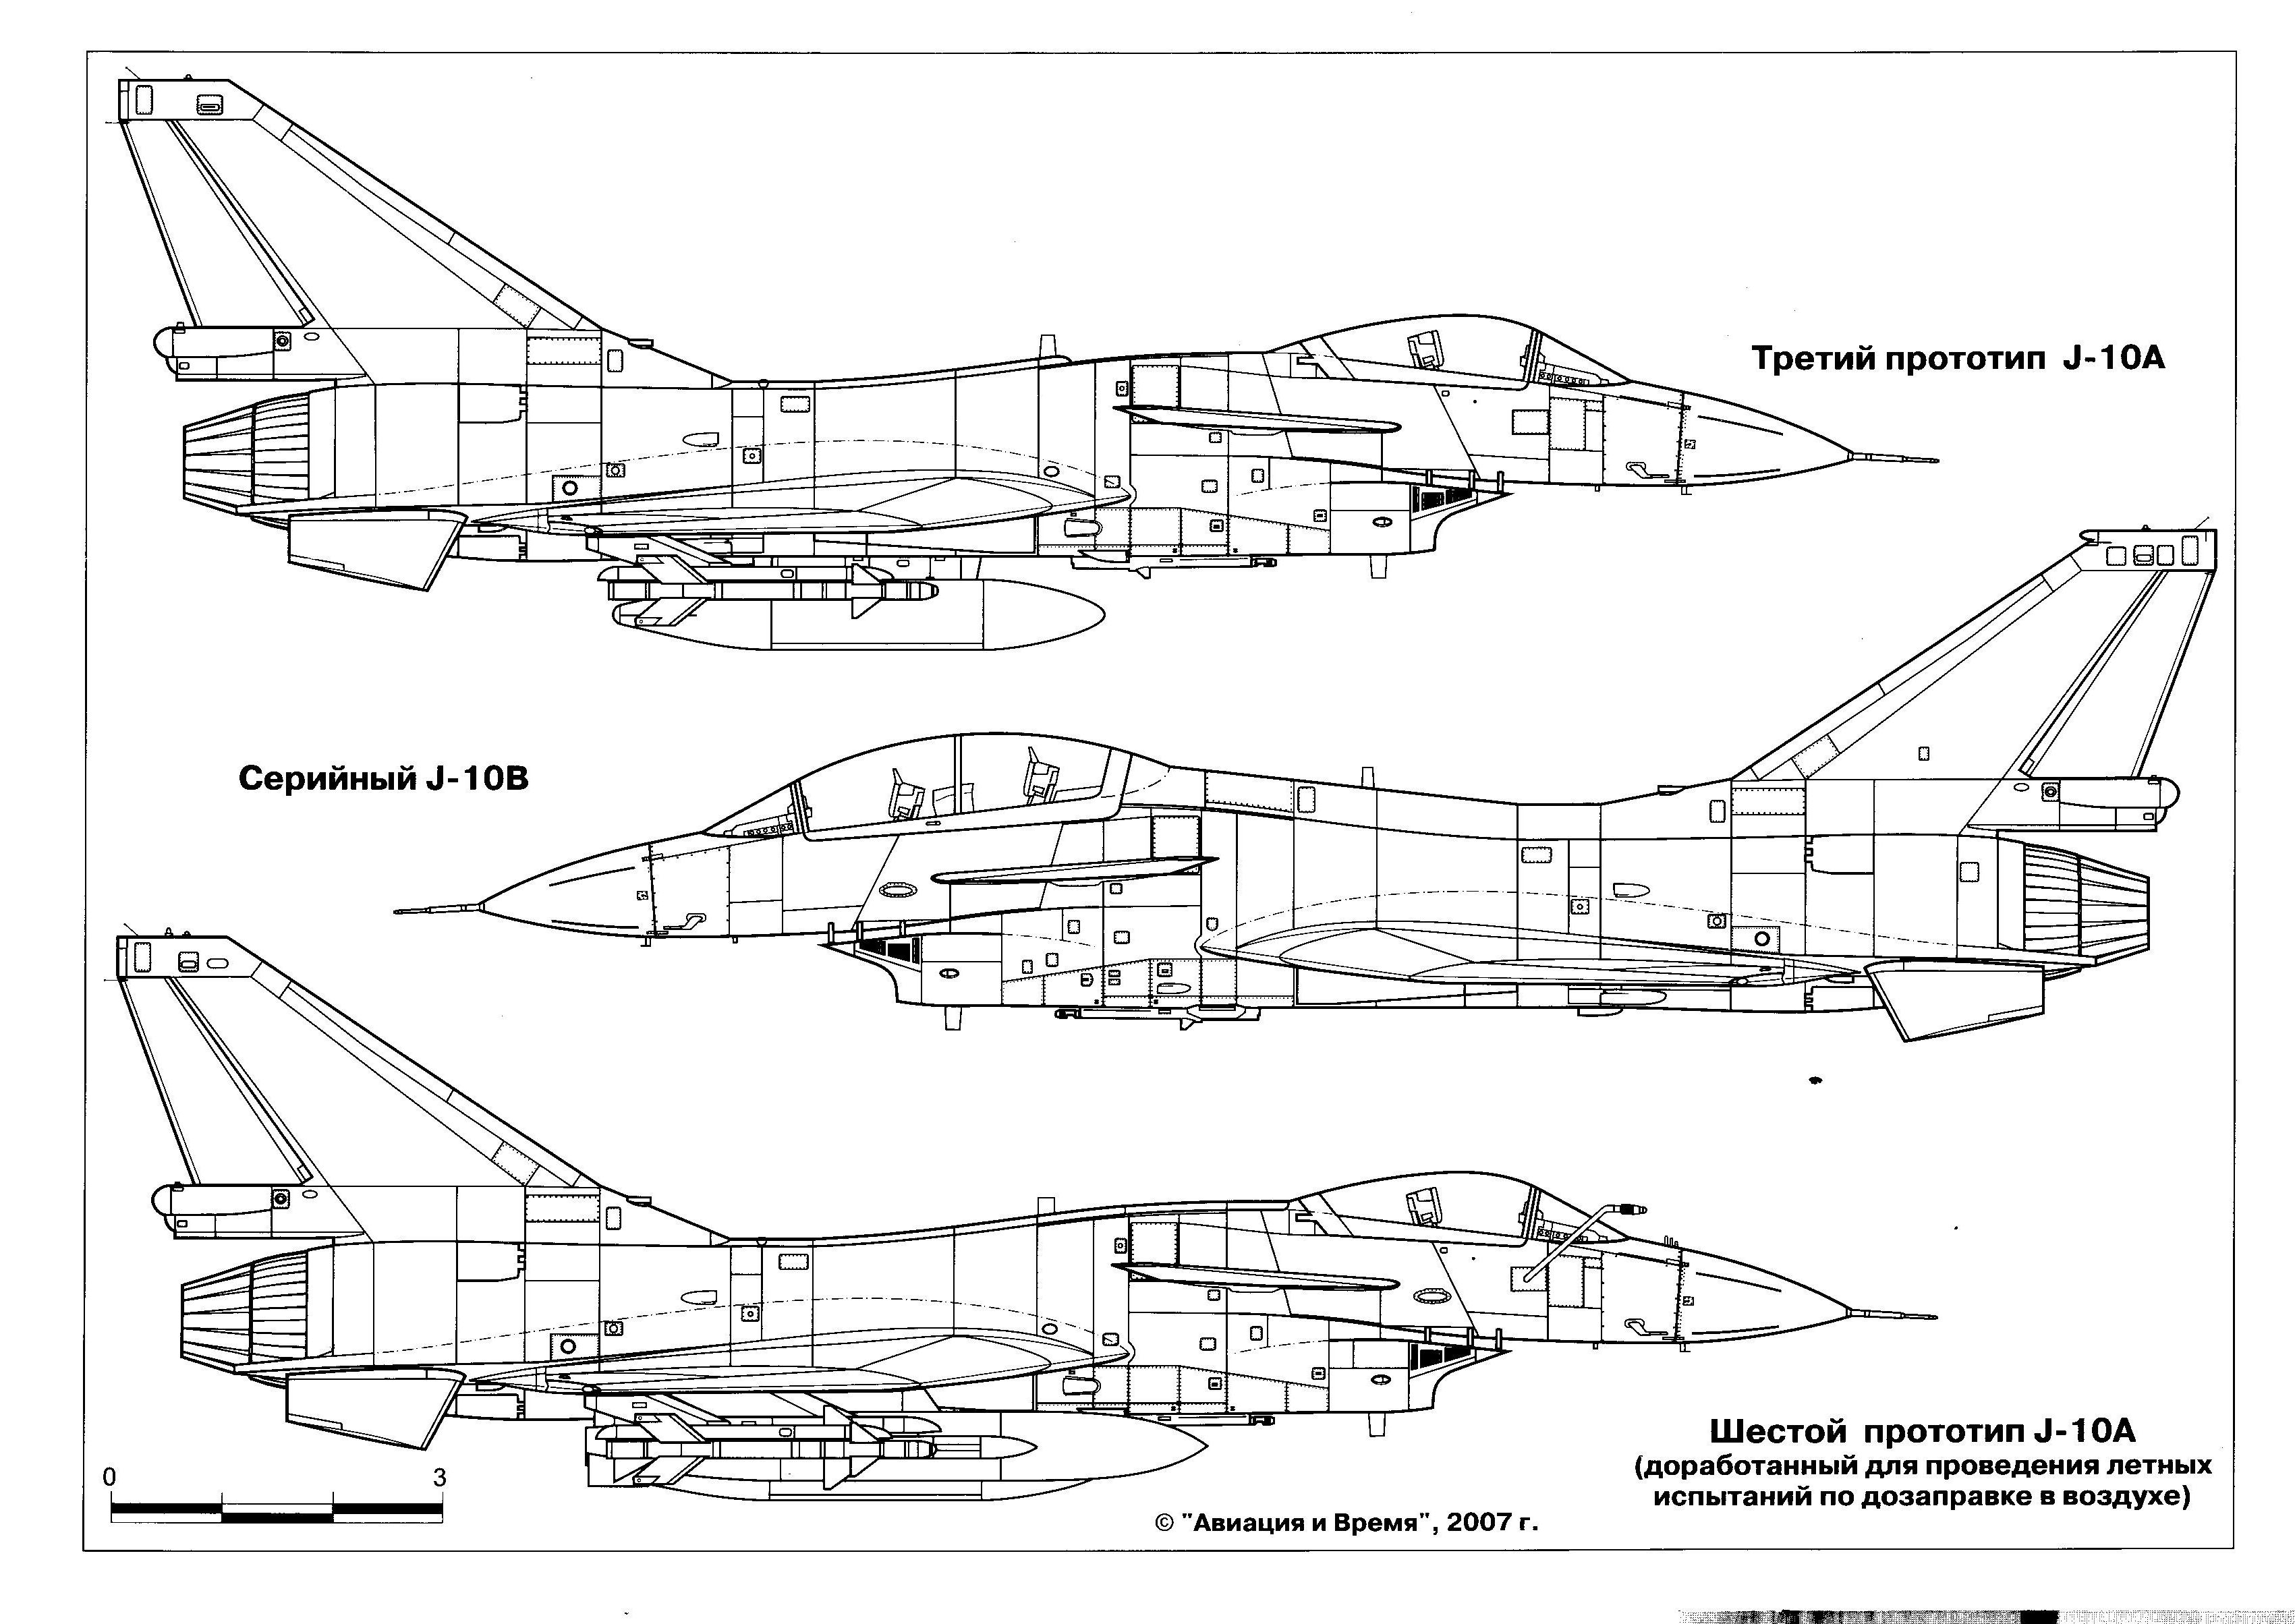 Chengdu J-10 blueprint